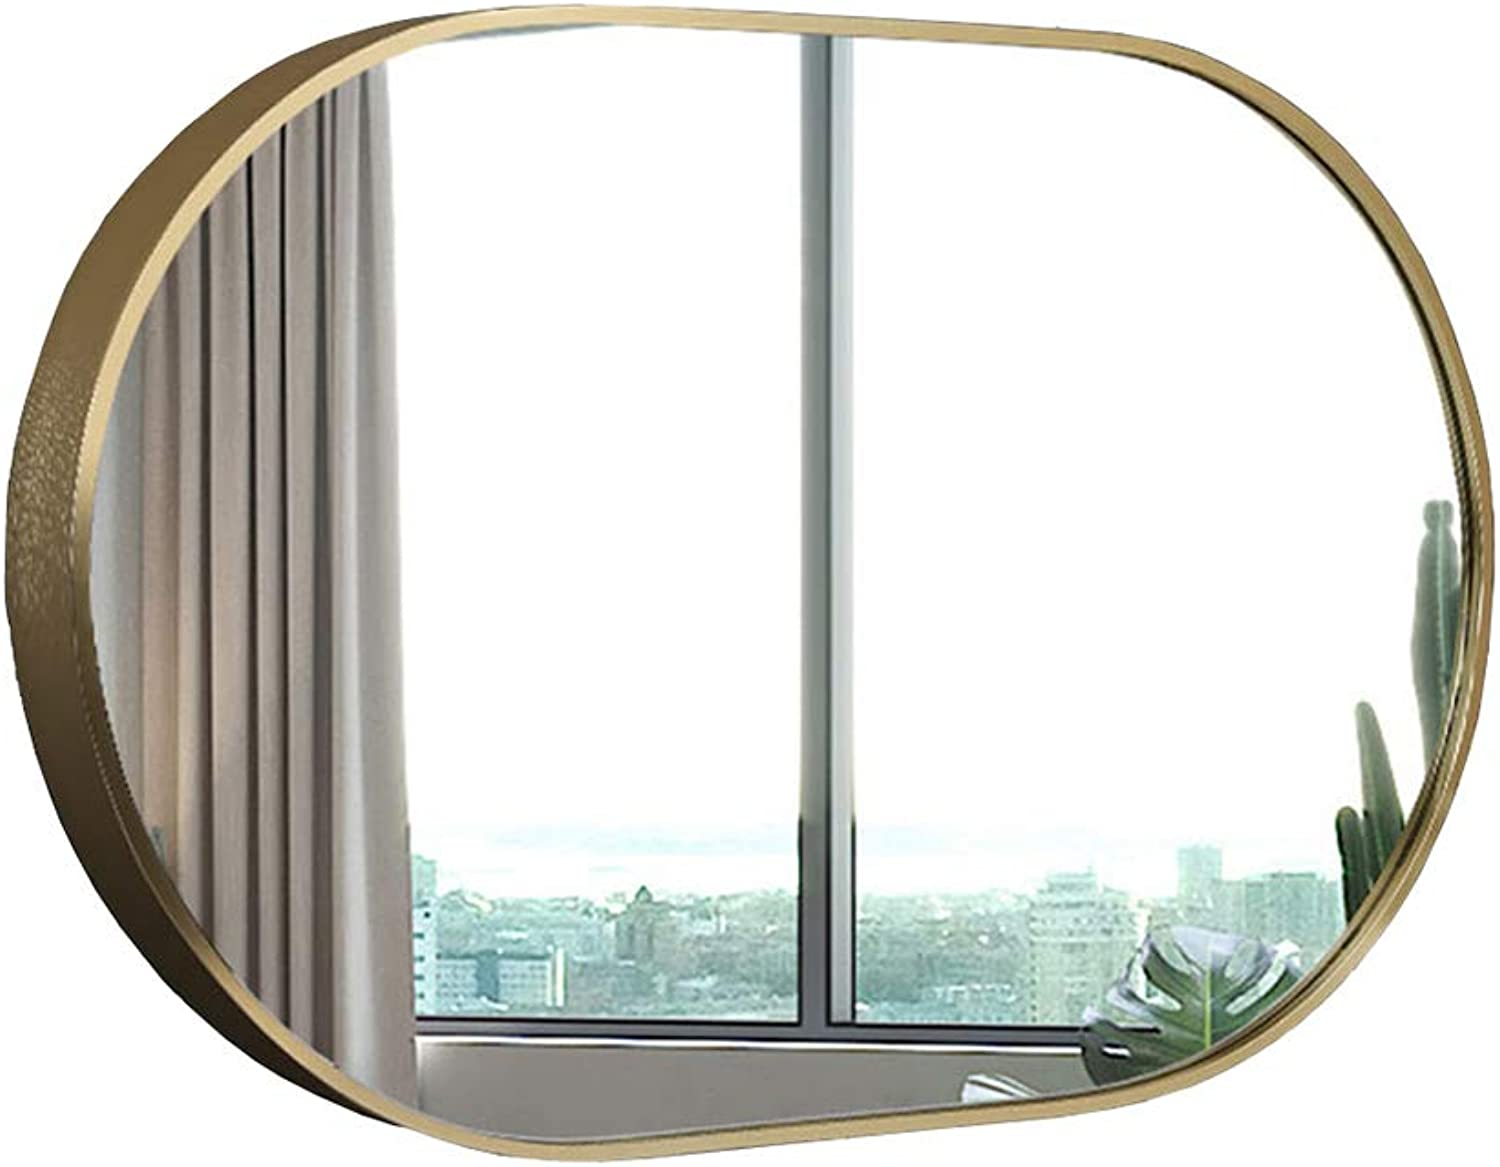 Wall Mounted Mirror Dressing Mirror with Metal Framed for Bedroom or Bathroom Mirror,Horizontal or greenical 20.5 x32.5